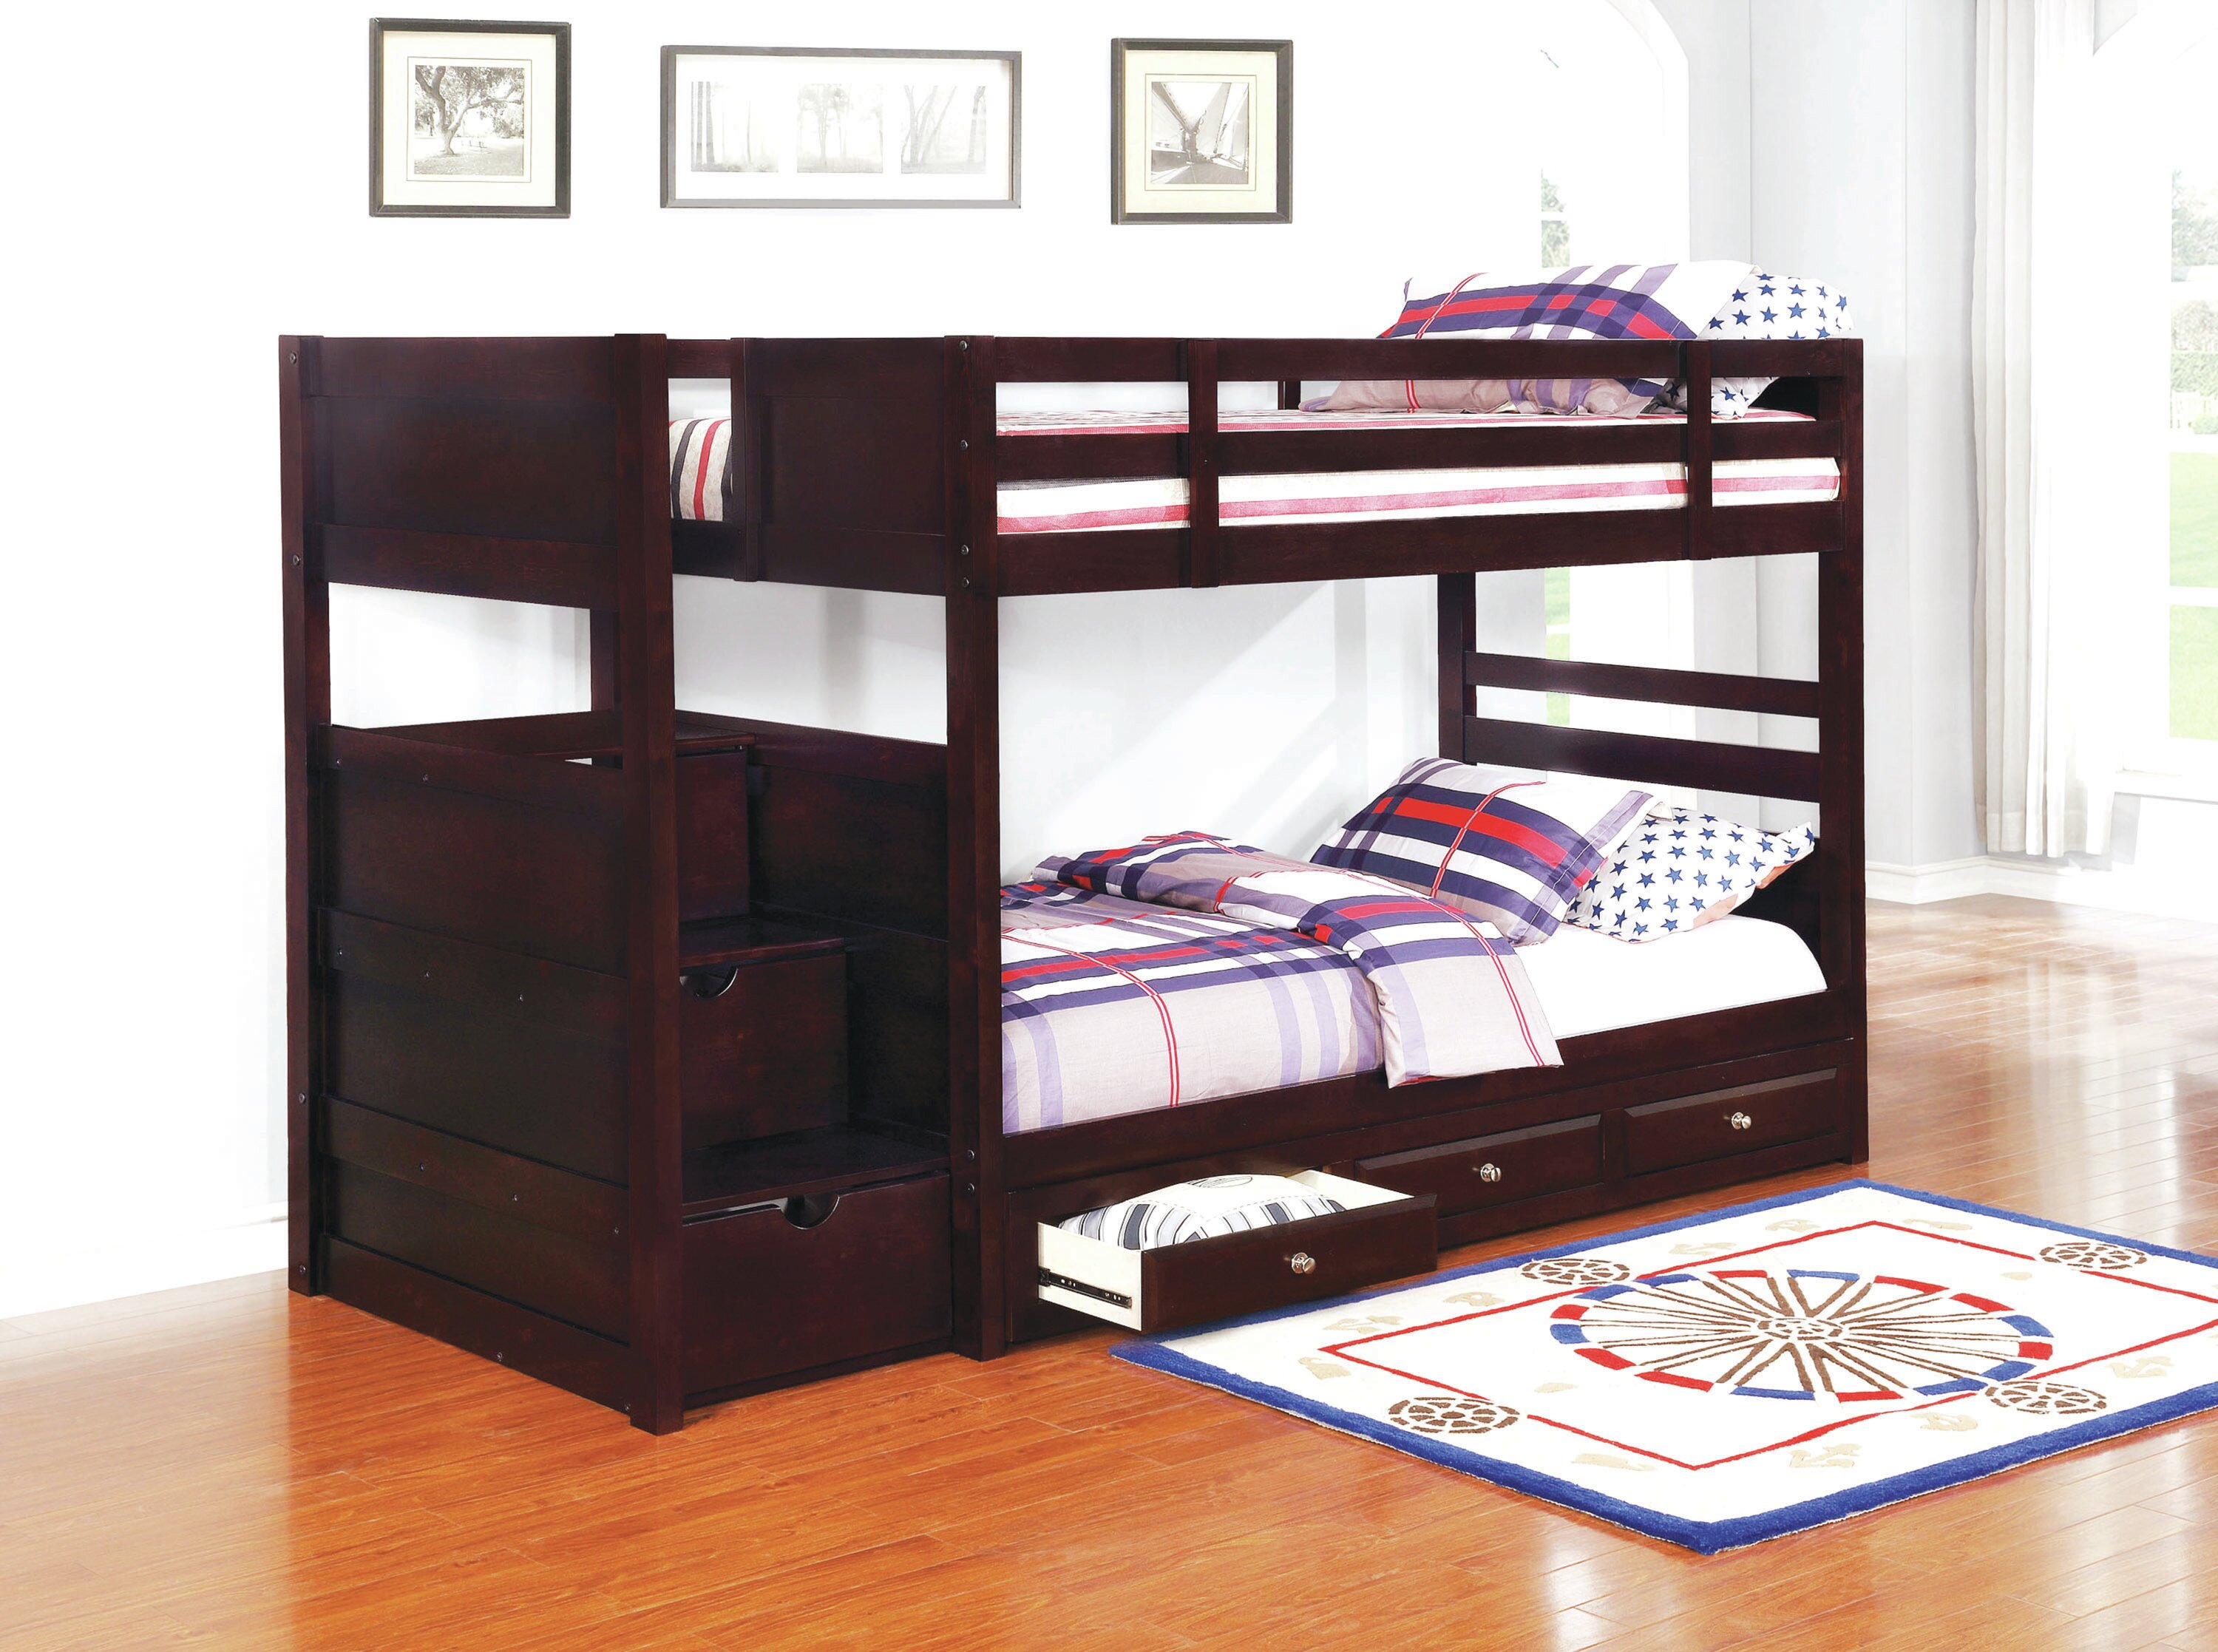 Image result for twin over twin bunk bed with storage